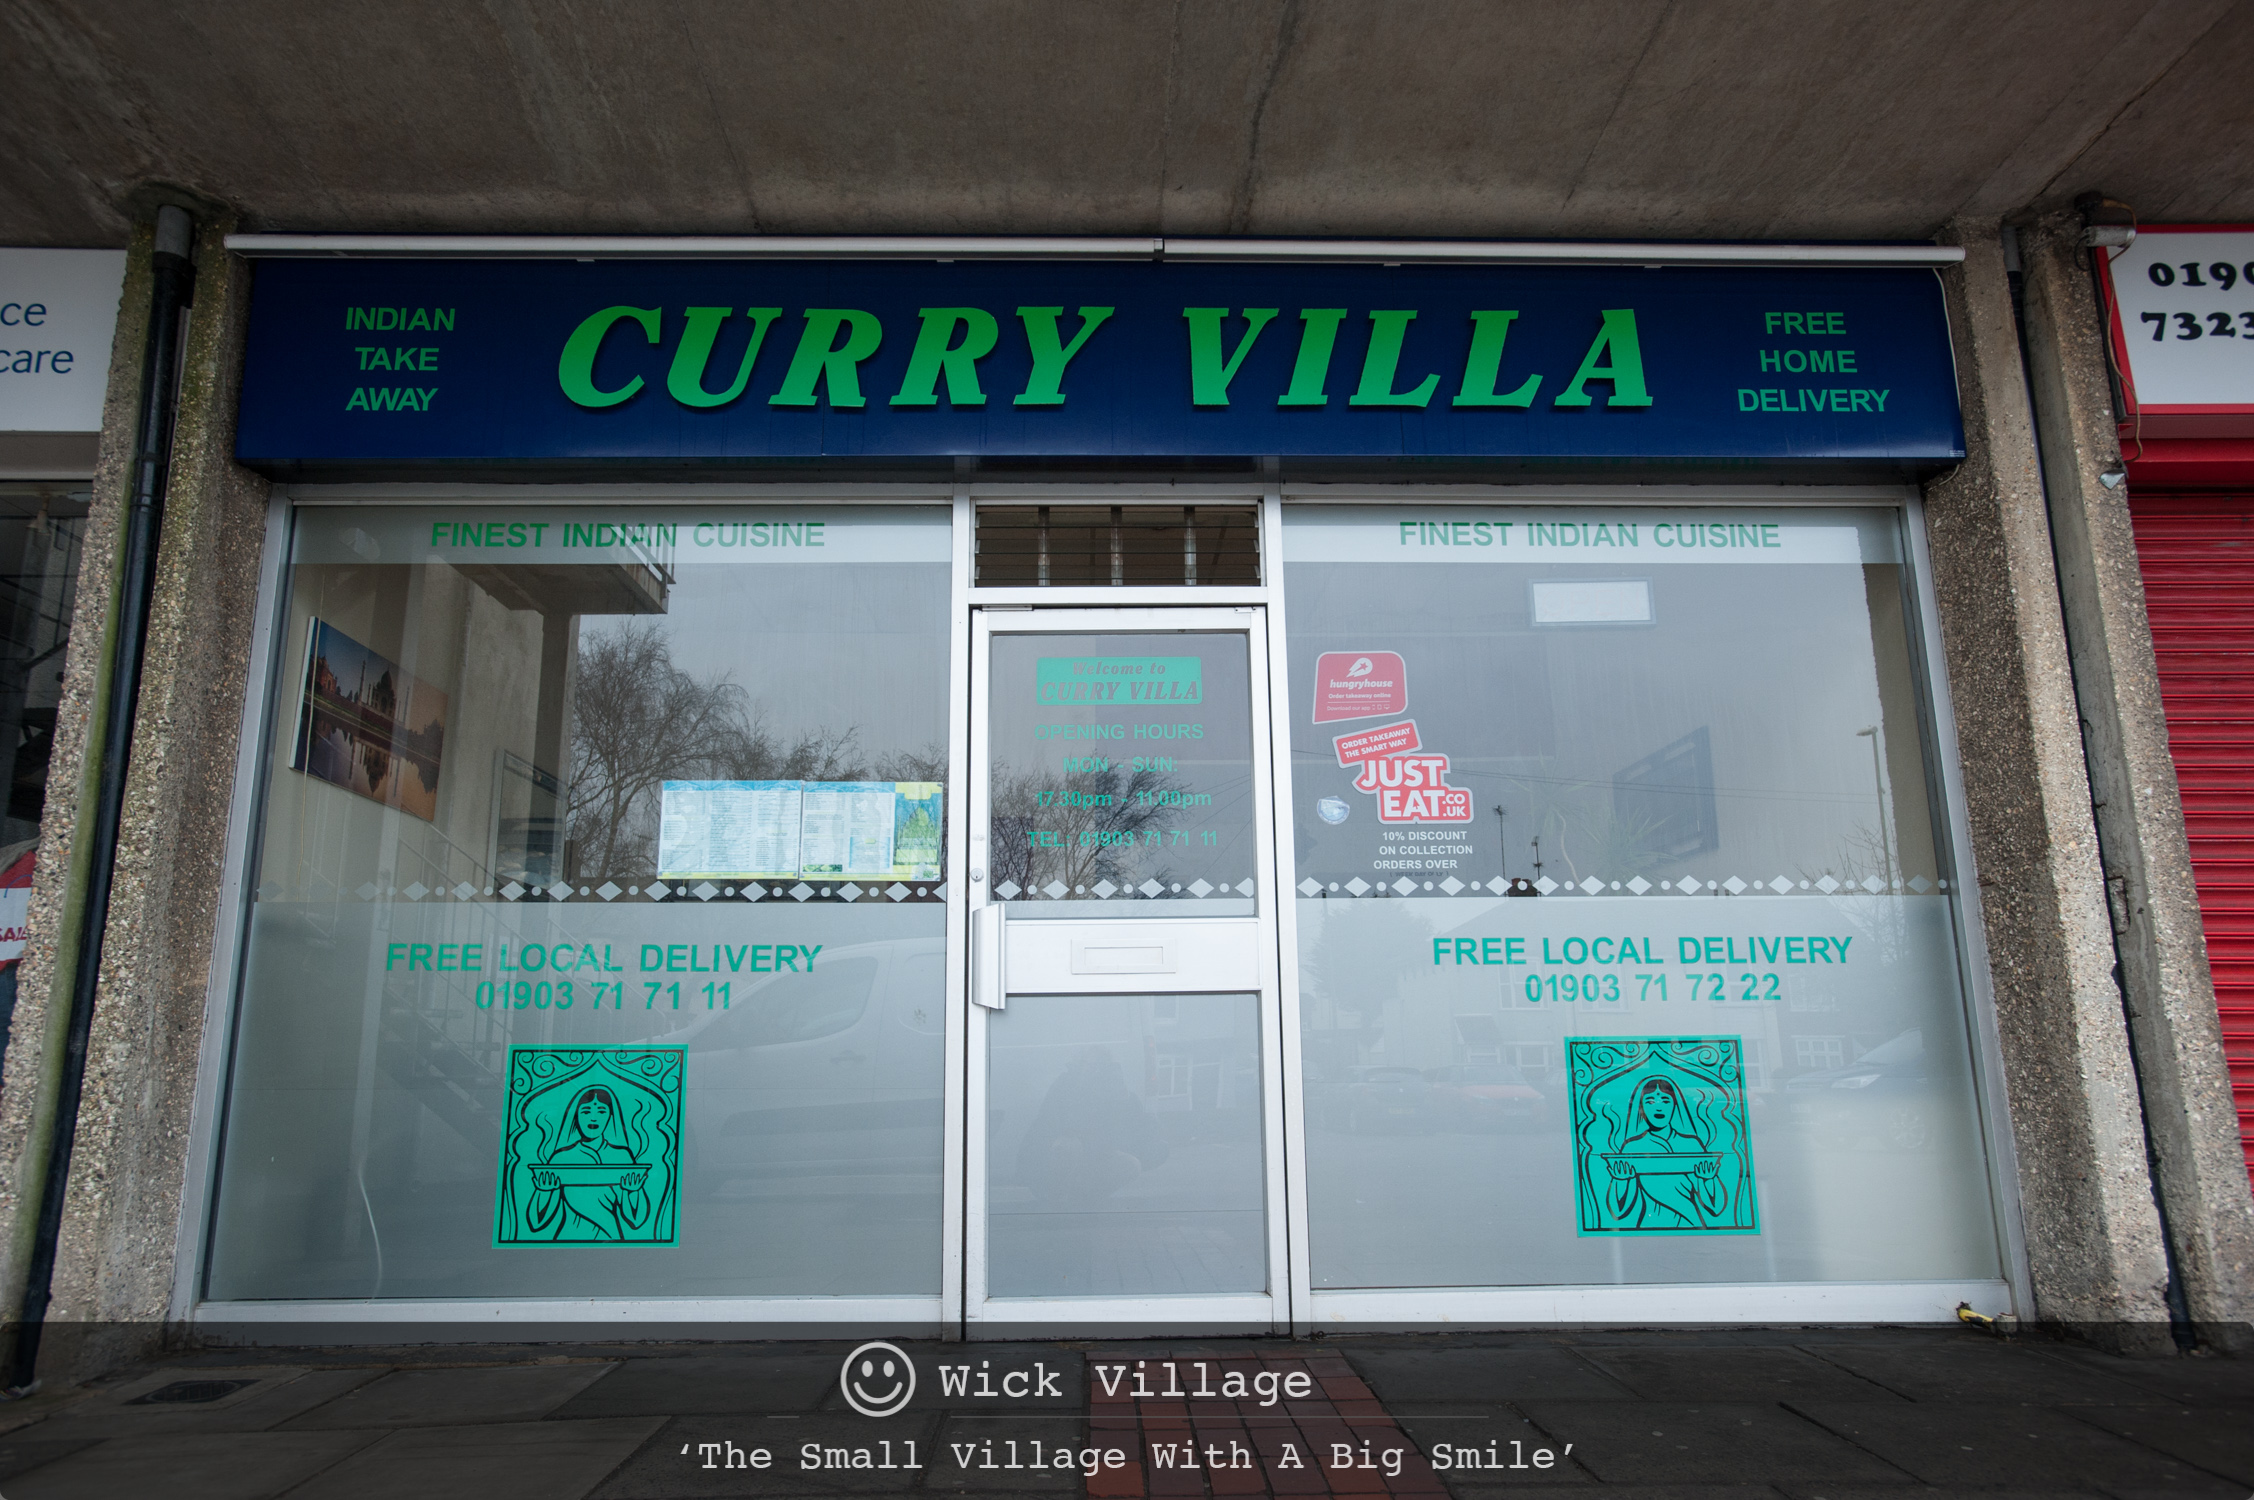 Curry Villa, Wick Village, Littlehampton.